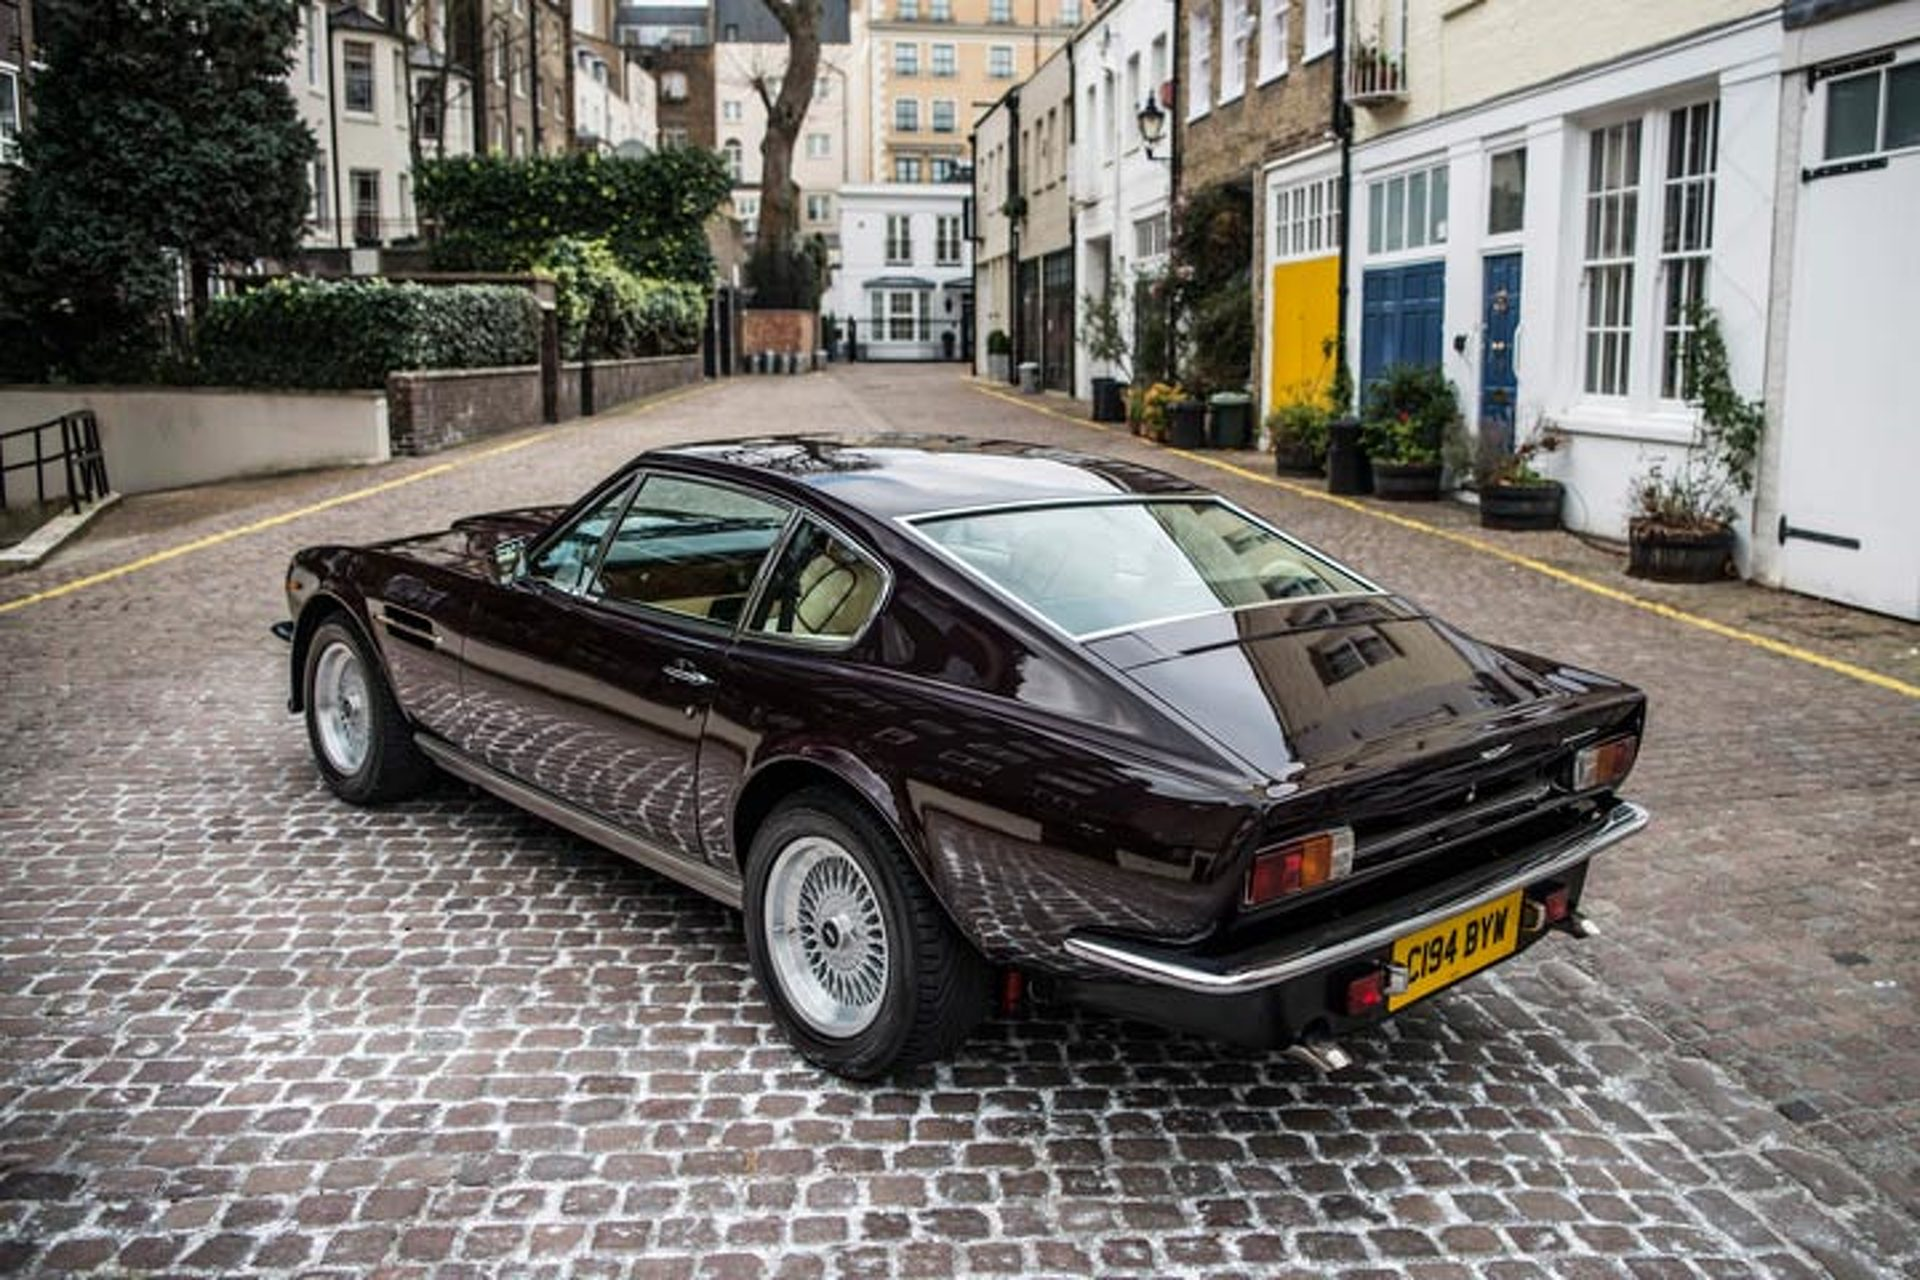 A Rare Sir Elton John Aston Martin is Up for Sale